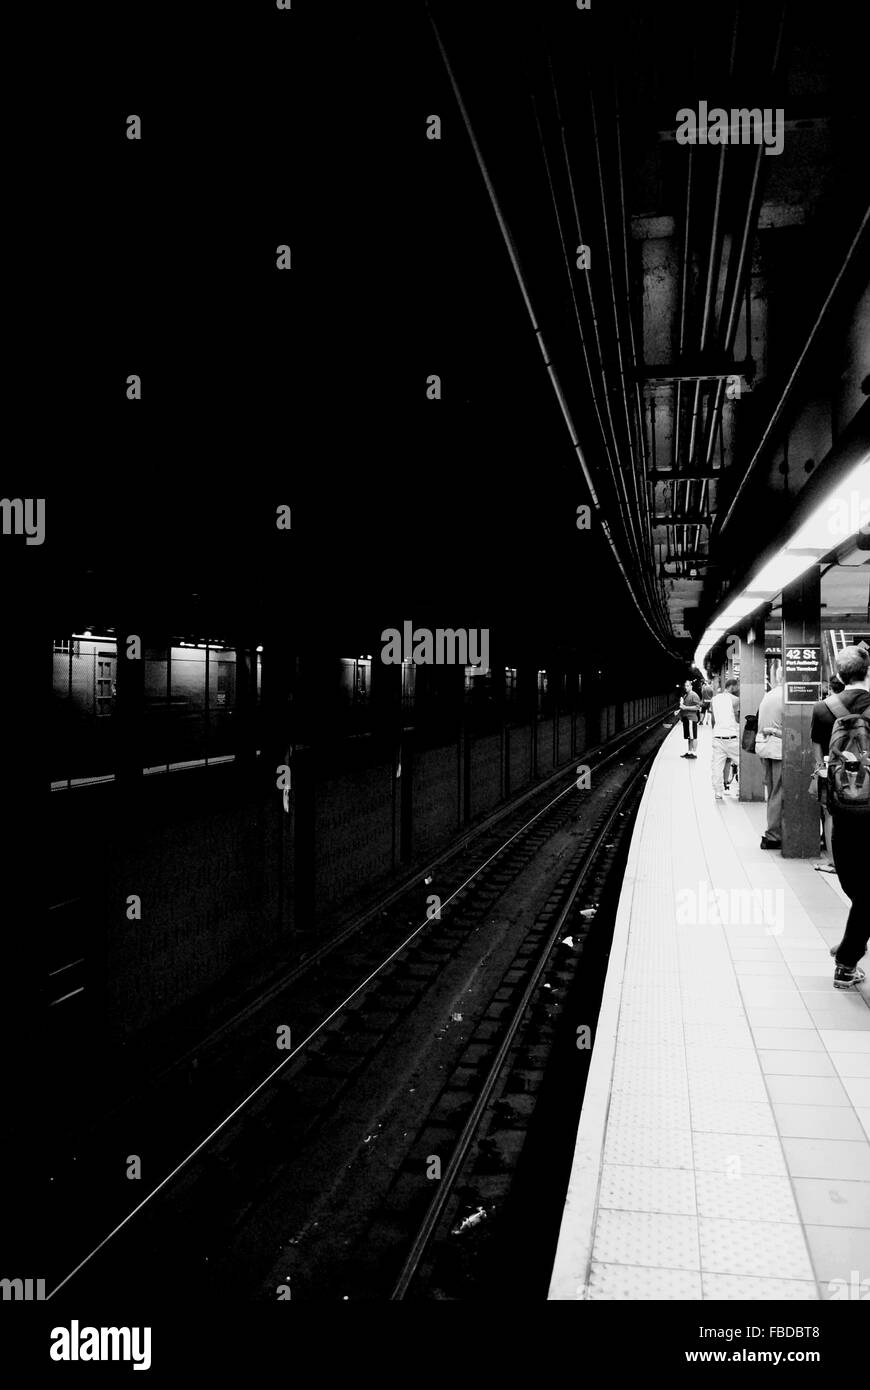 People At Railroad Station Platform - Stock Image